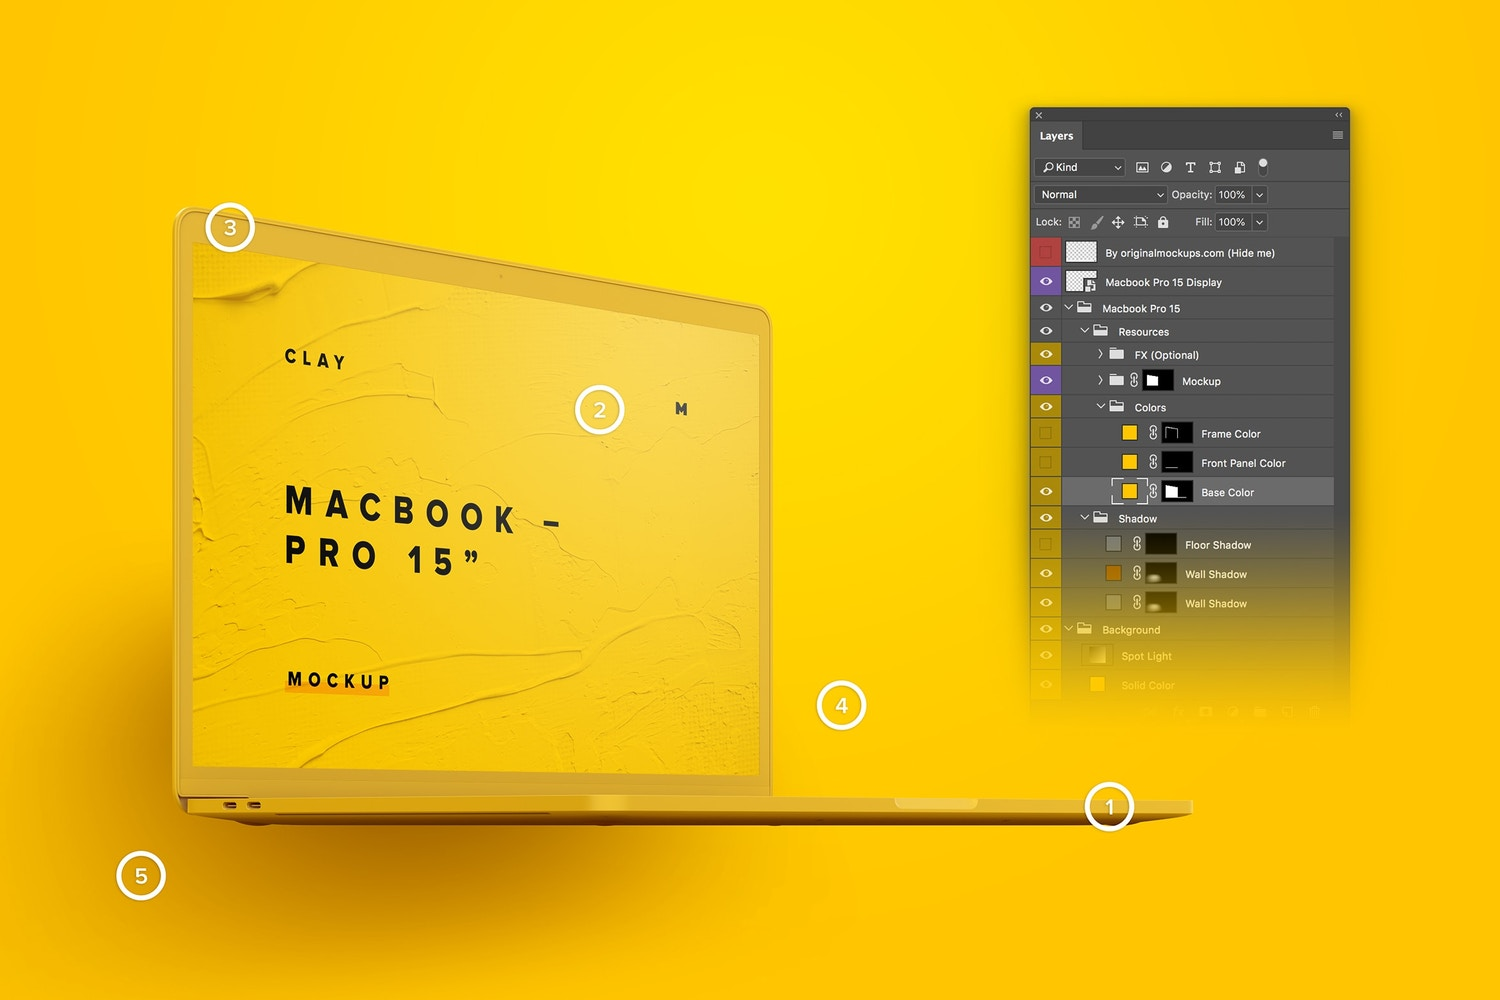 "Clay MacBook Pro 15"" with Touch Bar, Front Left View Mockup 02 (3) by Original Mockups on Original Mockups"